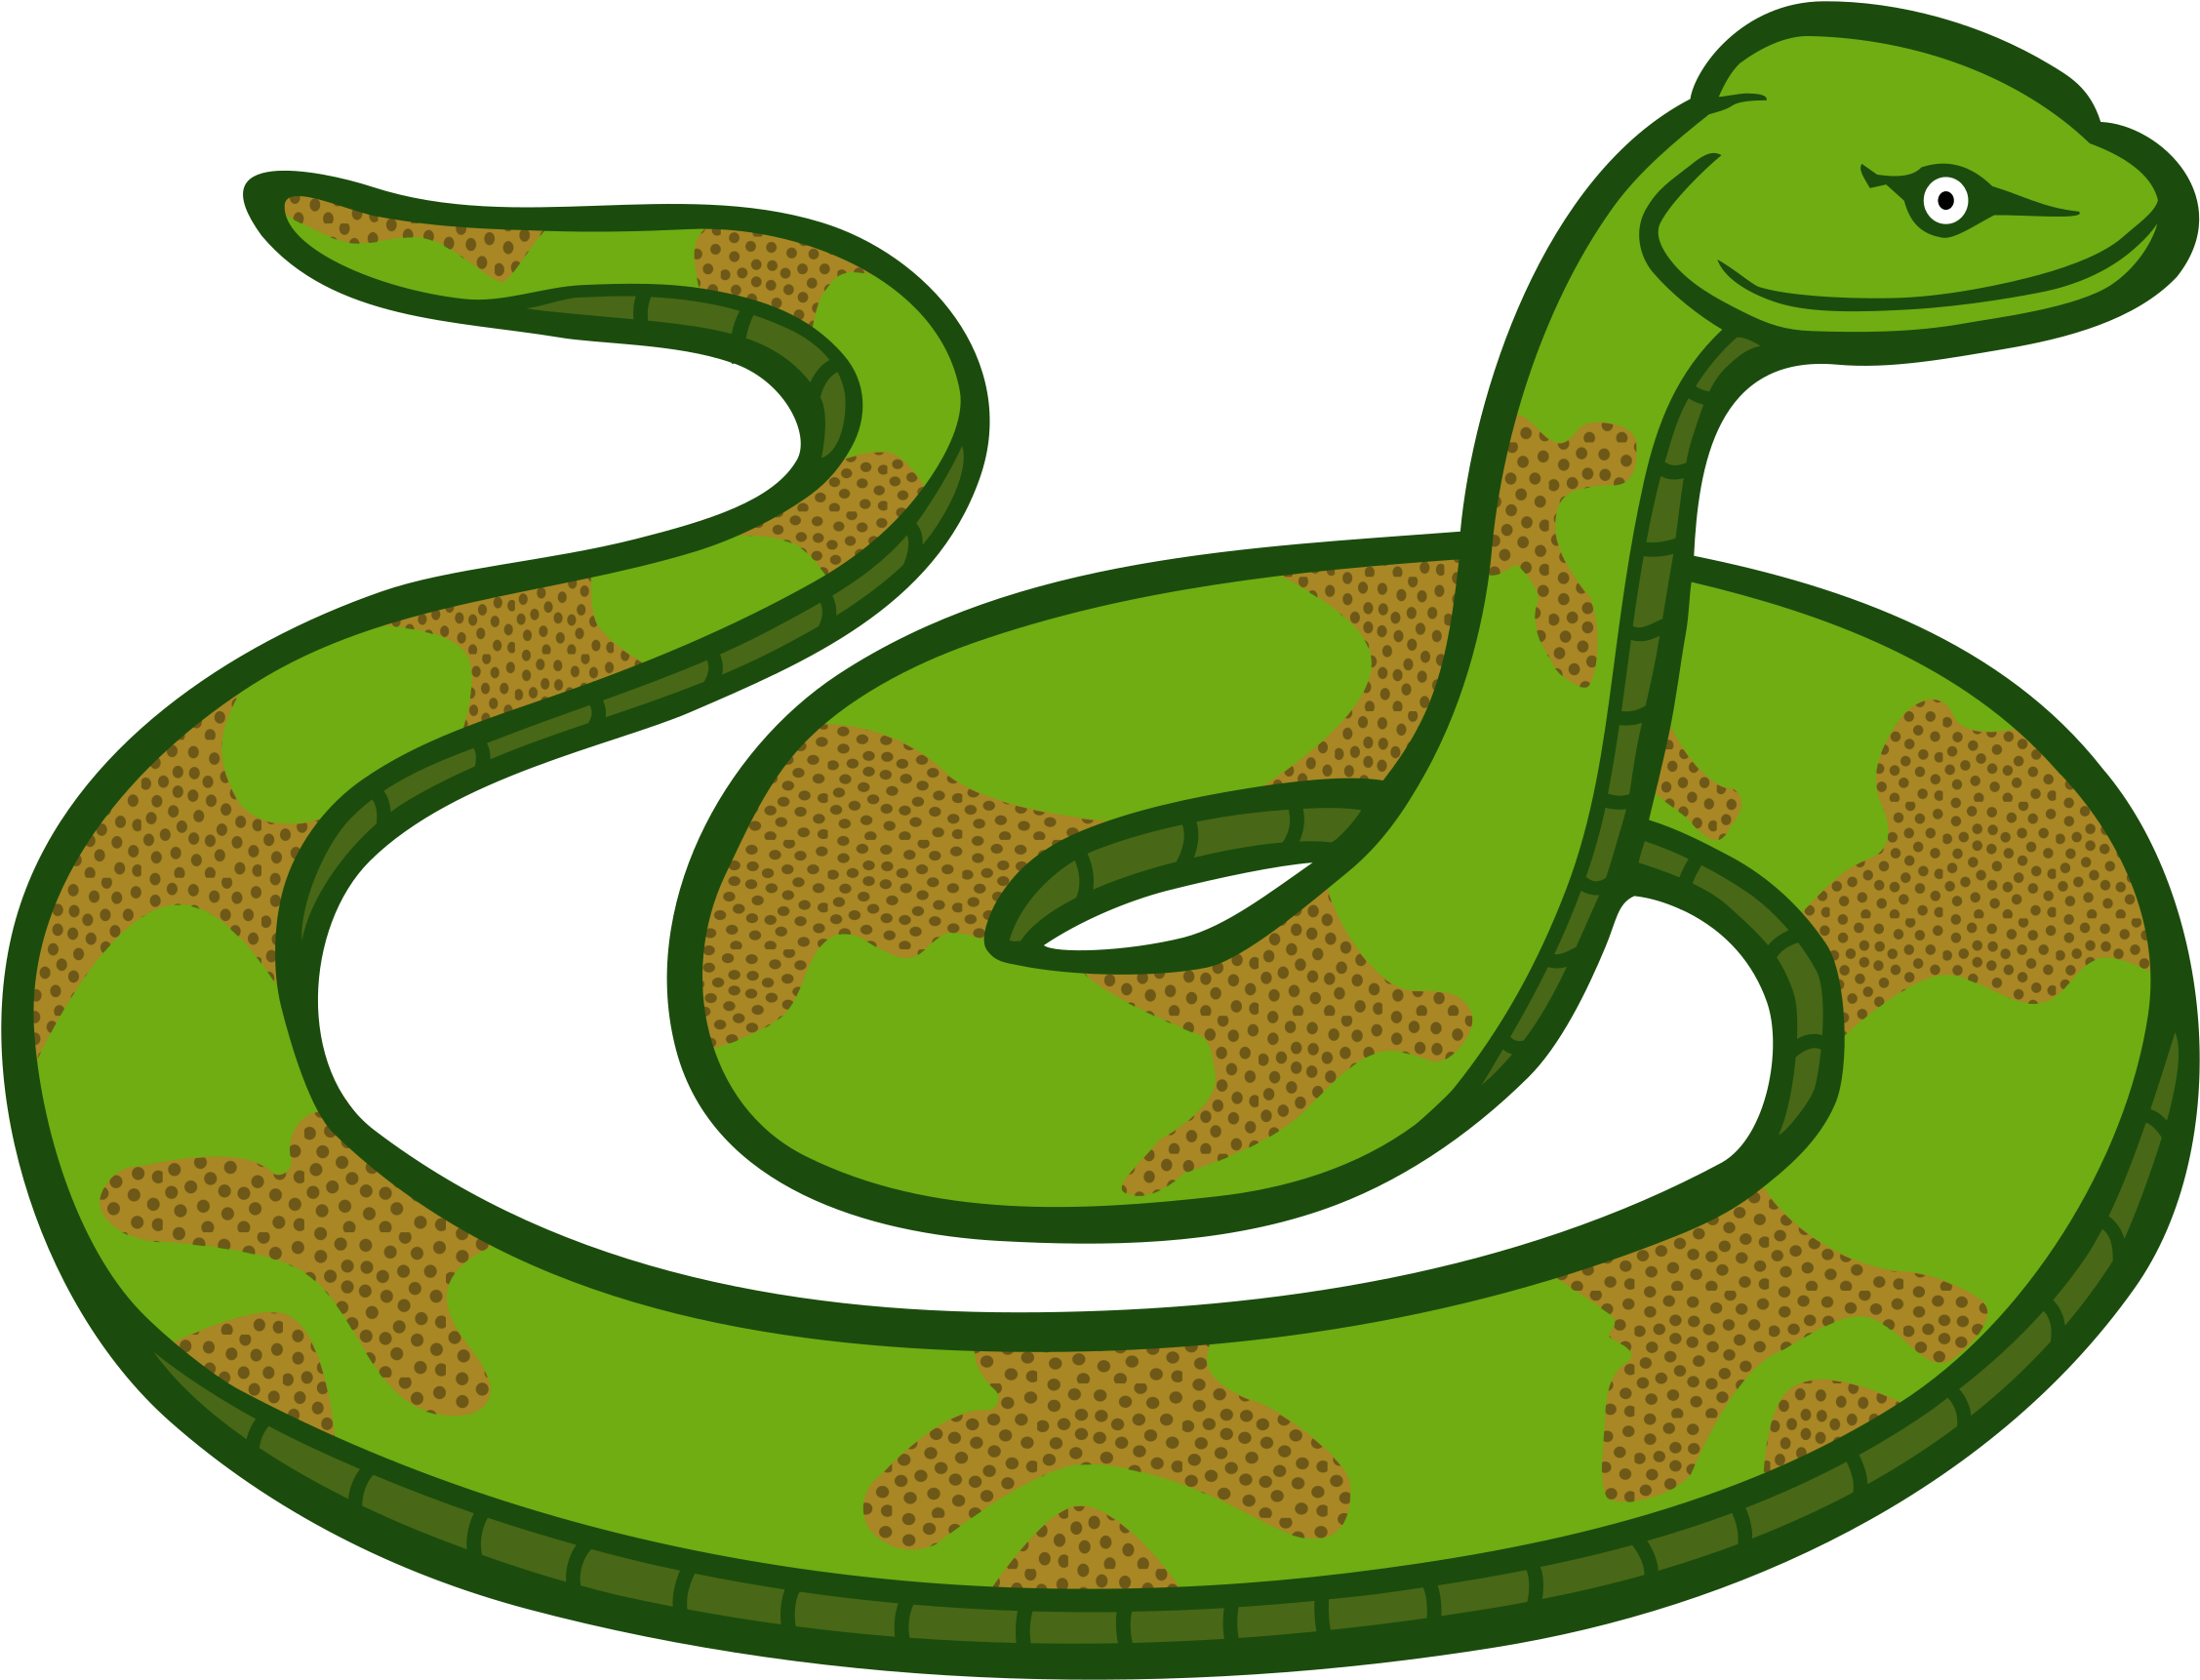 Free Snake Clipart Transparent, Download Free Clip Art, Free.